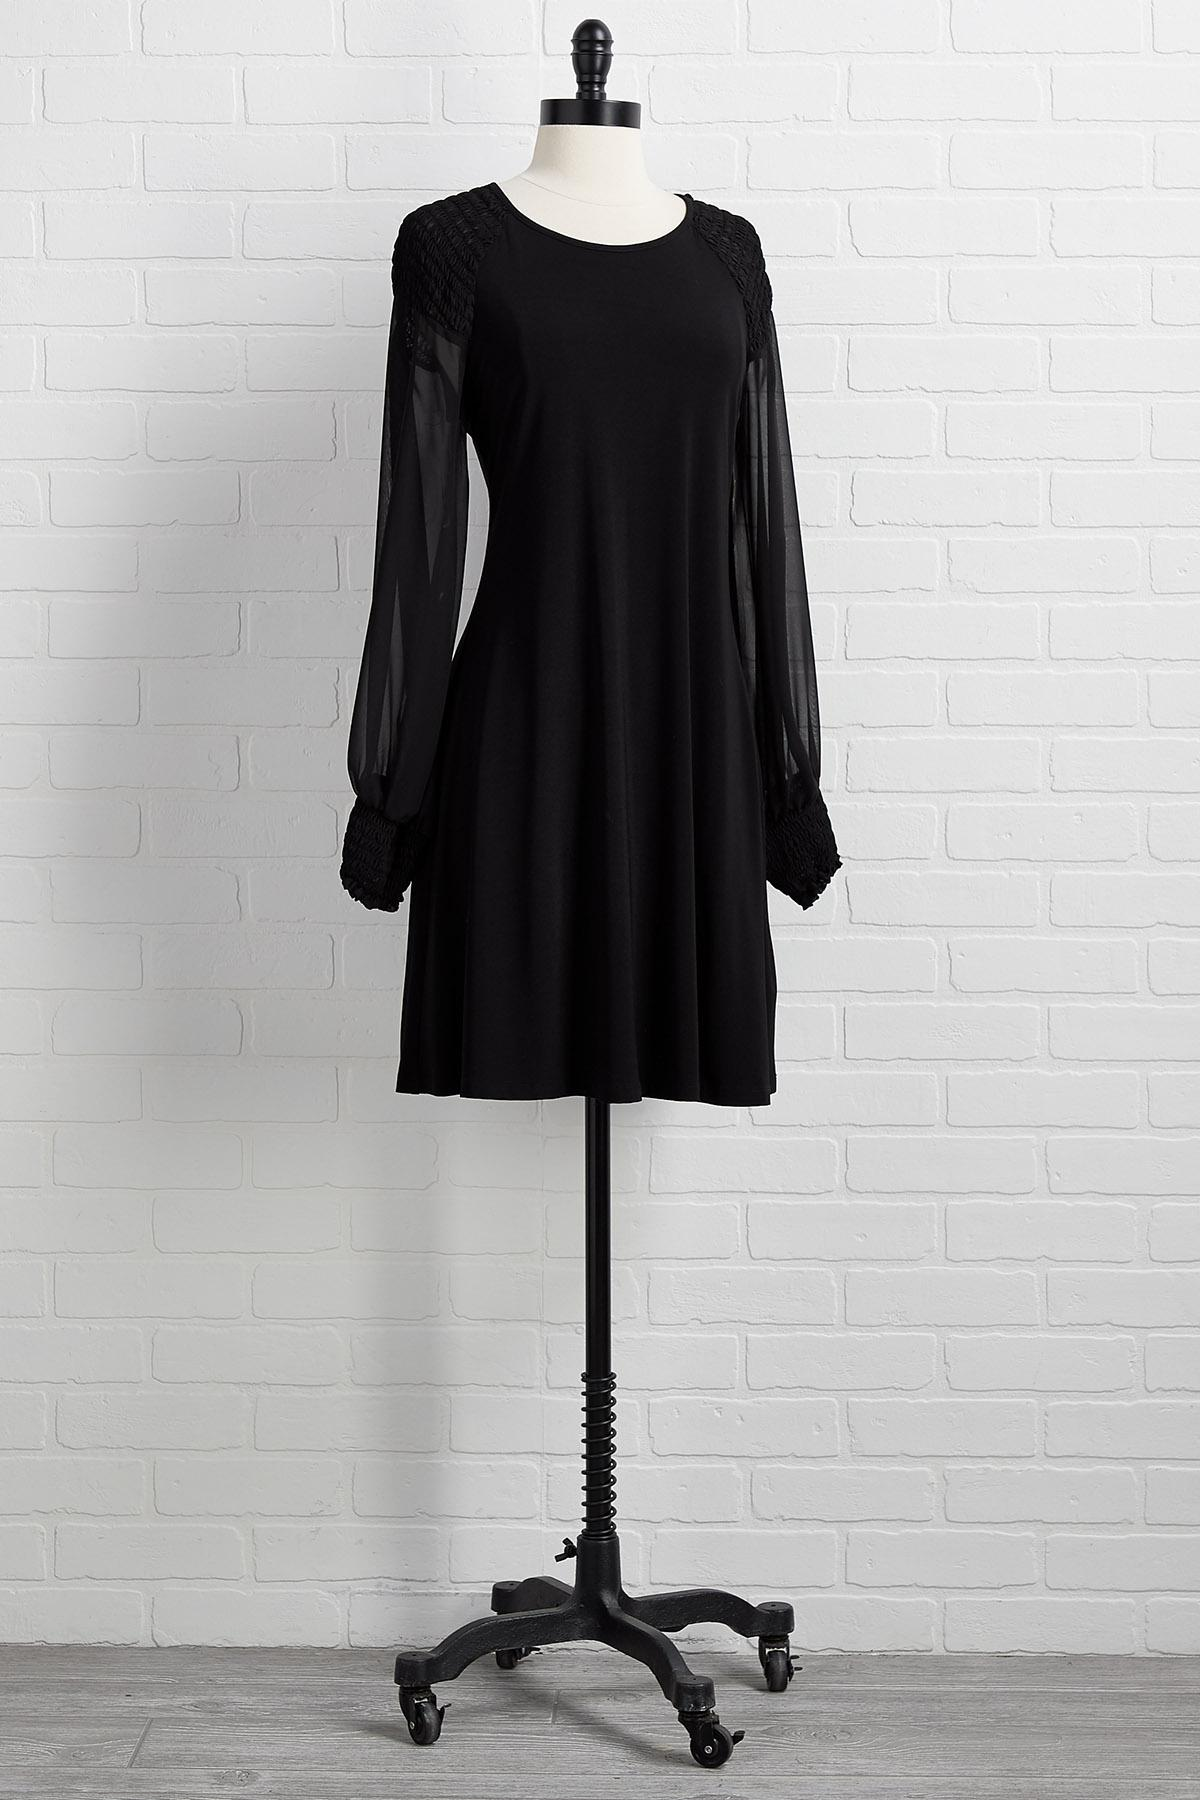 Sheer For A Good Time Dress